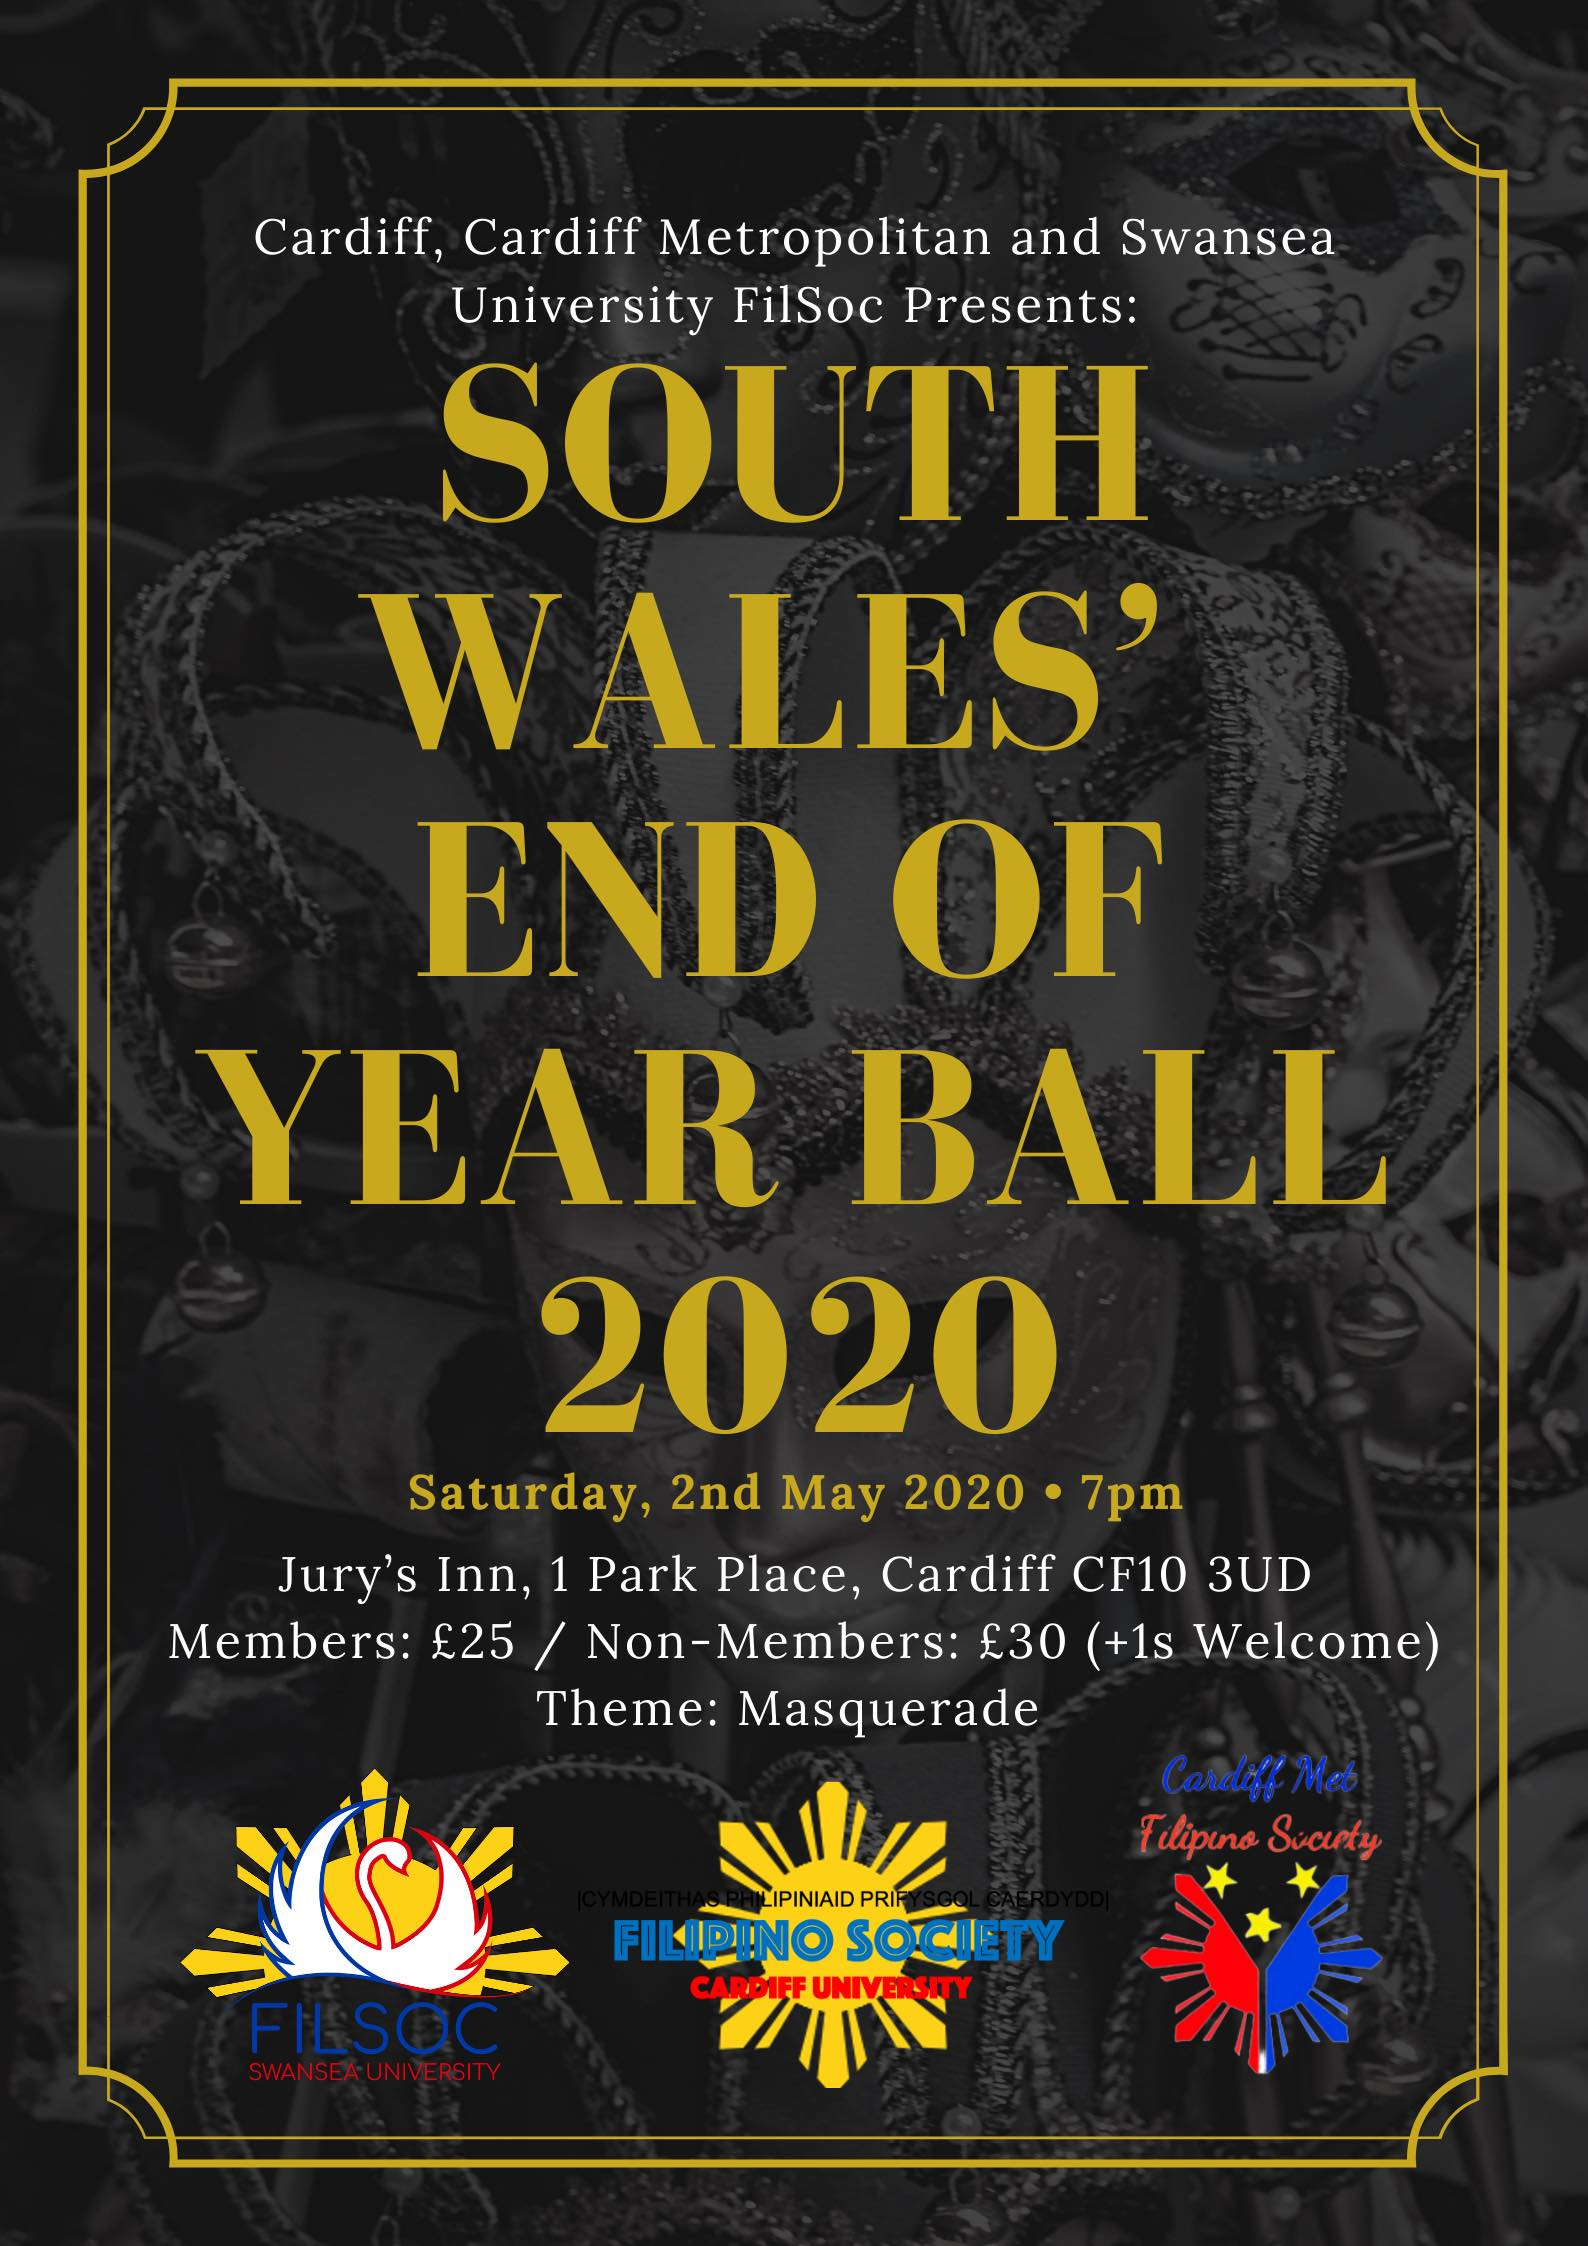 South Wales' End of Year Ball